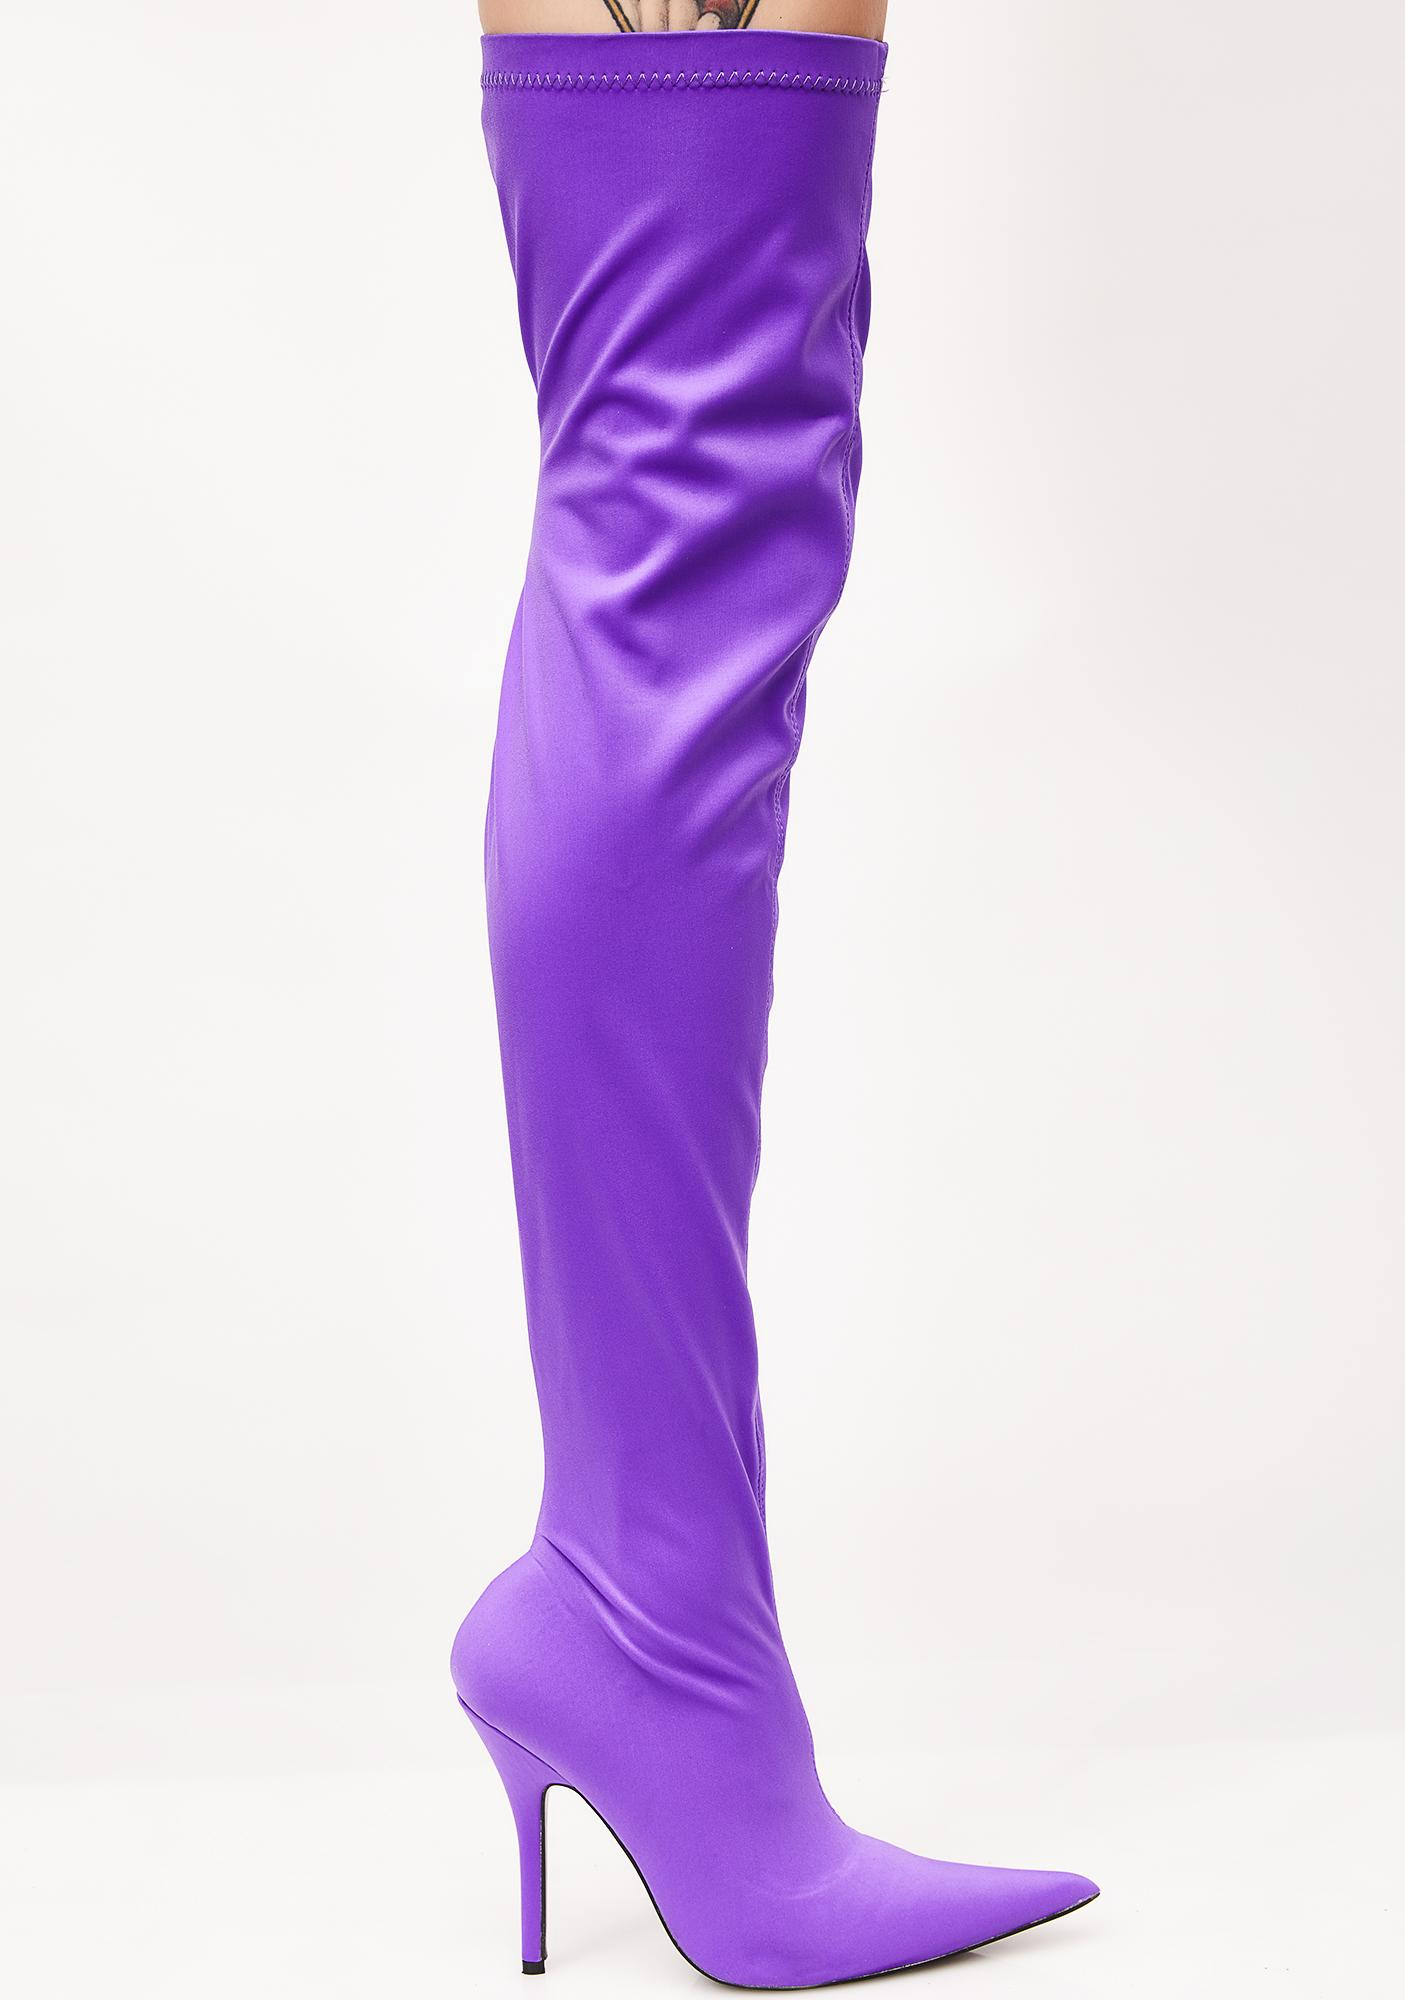 7061ac6a510 ... Public Desire Refuge Over The Knee Boots ...